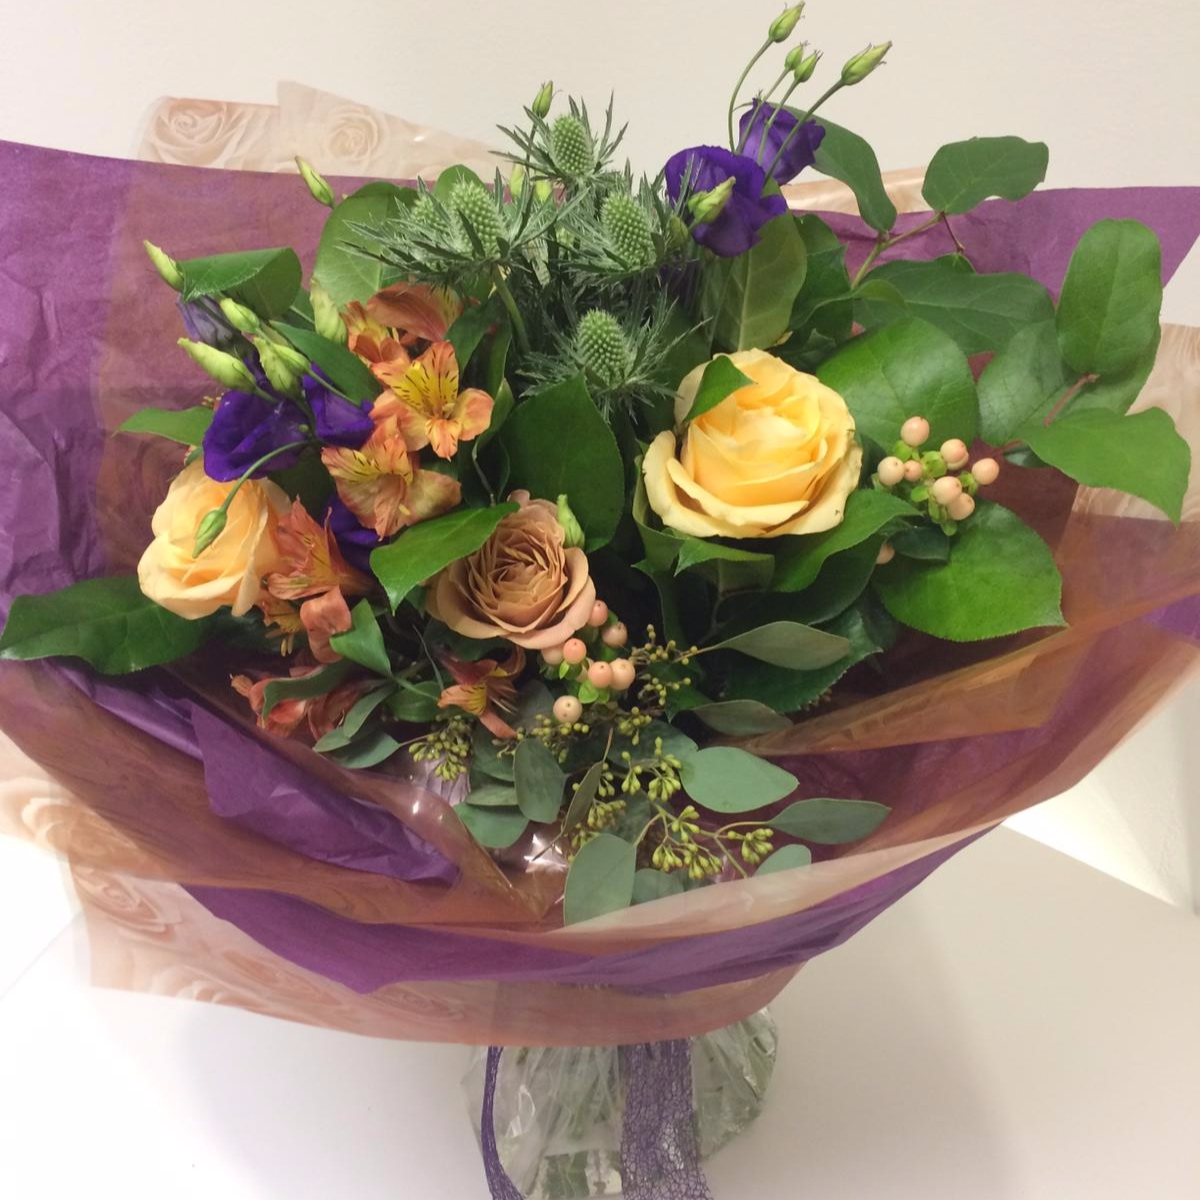 Bouquets - Designs for any occasion, all fully customisable with your choice of colours, flower types, and wrappings.